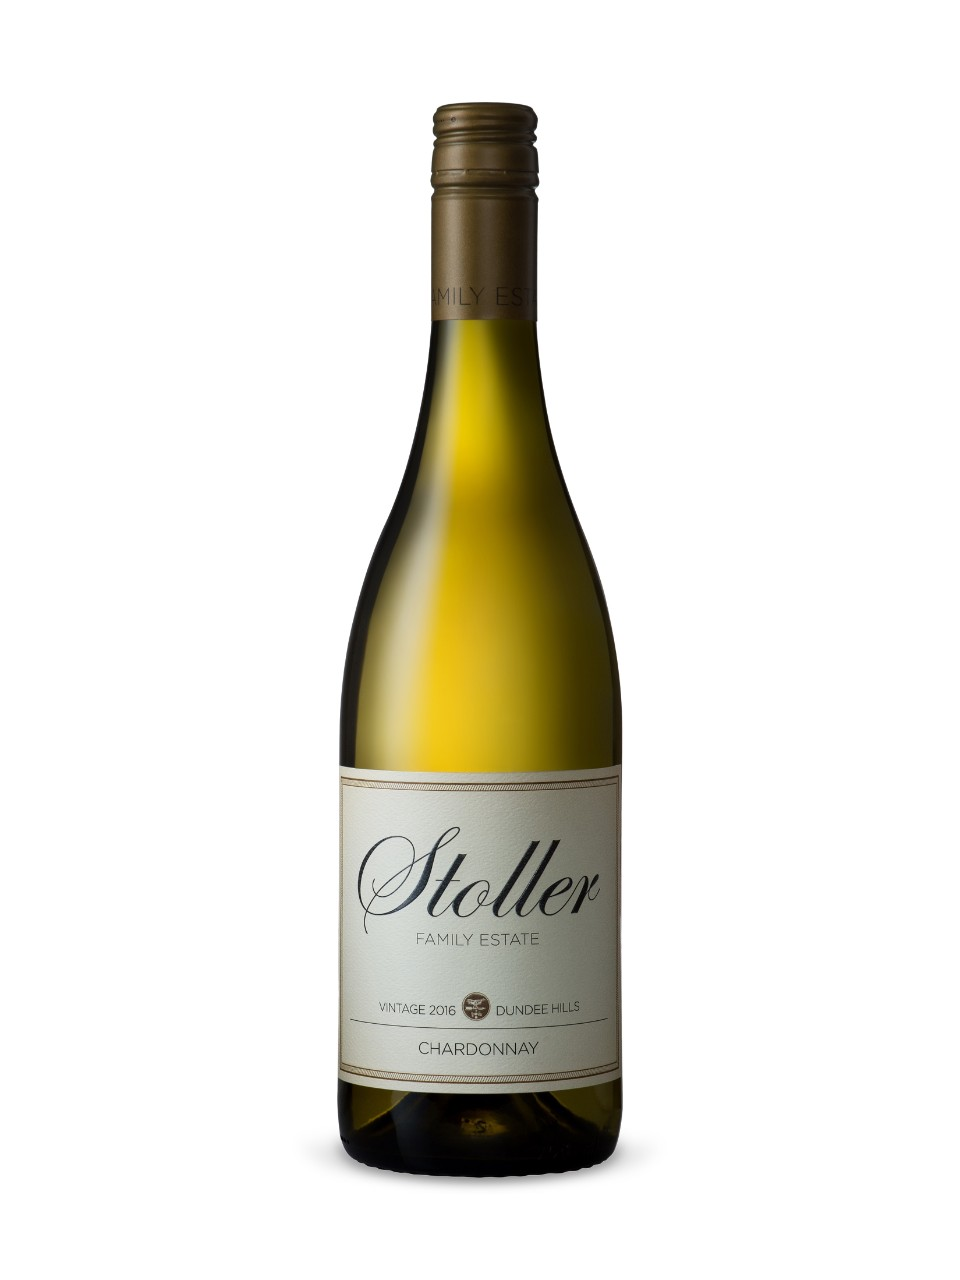 Chardonnay Stoller Family Estate 2016